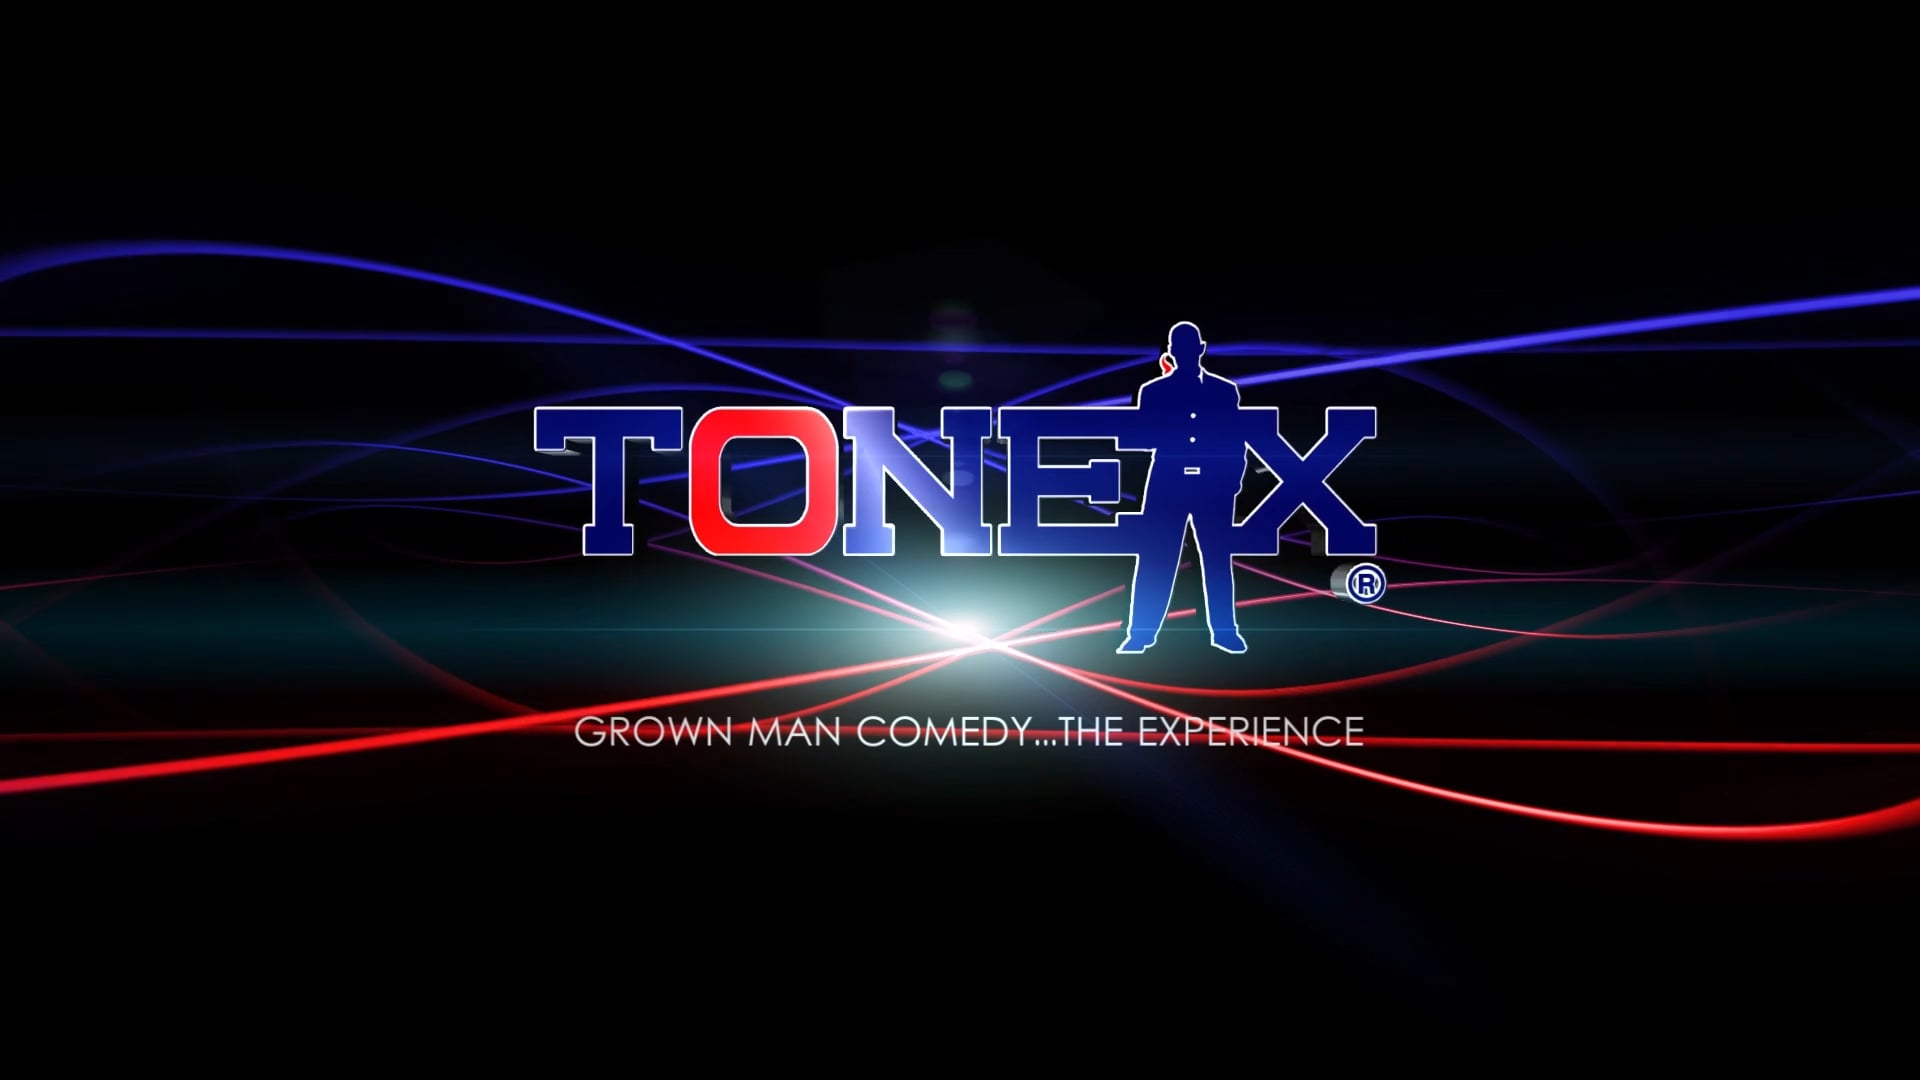 Grown Man Comedy...The Experience Trailer